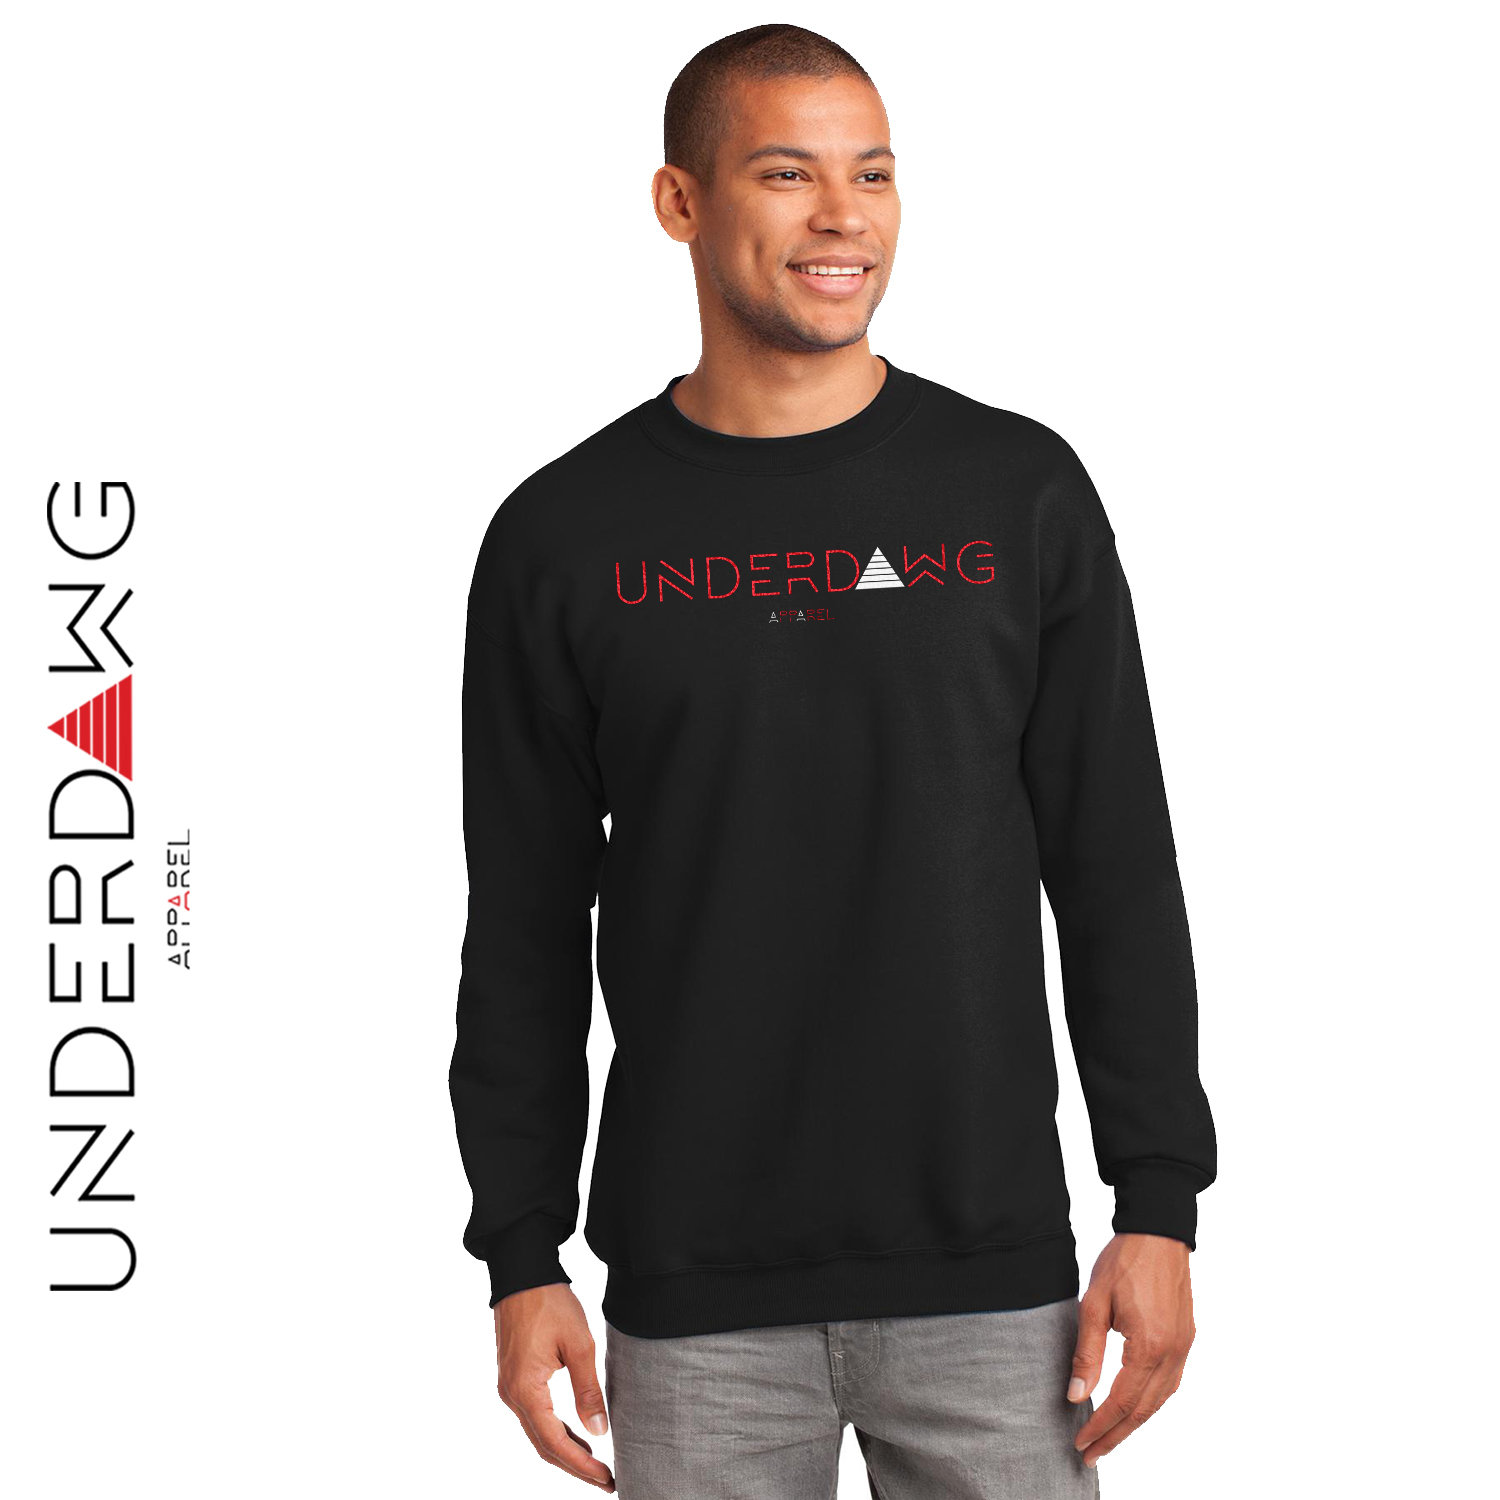 UnderDawg Apparel Sweatshirt 00037